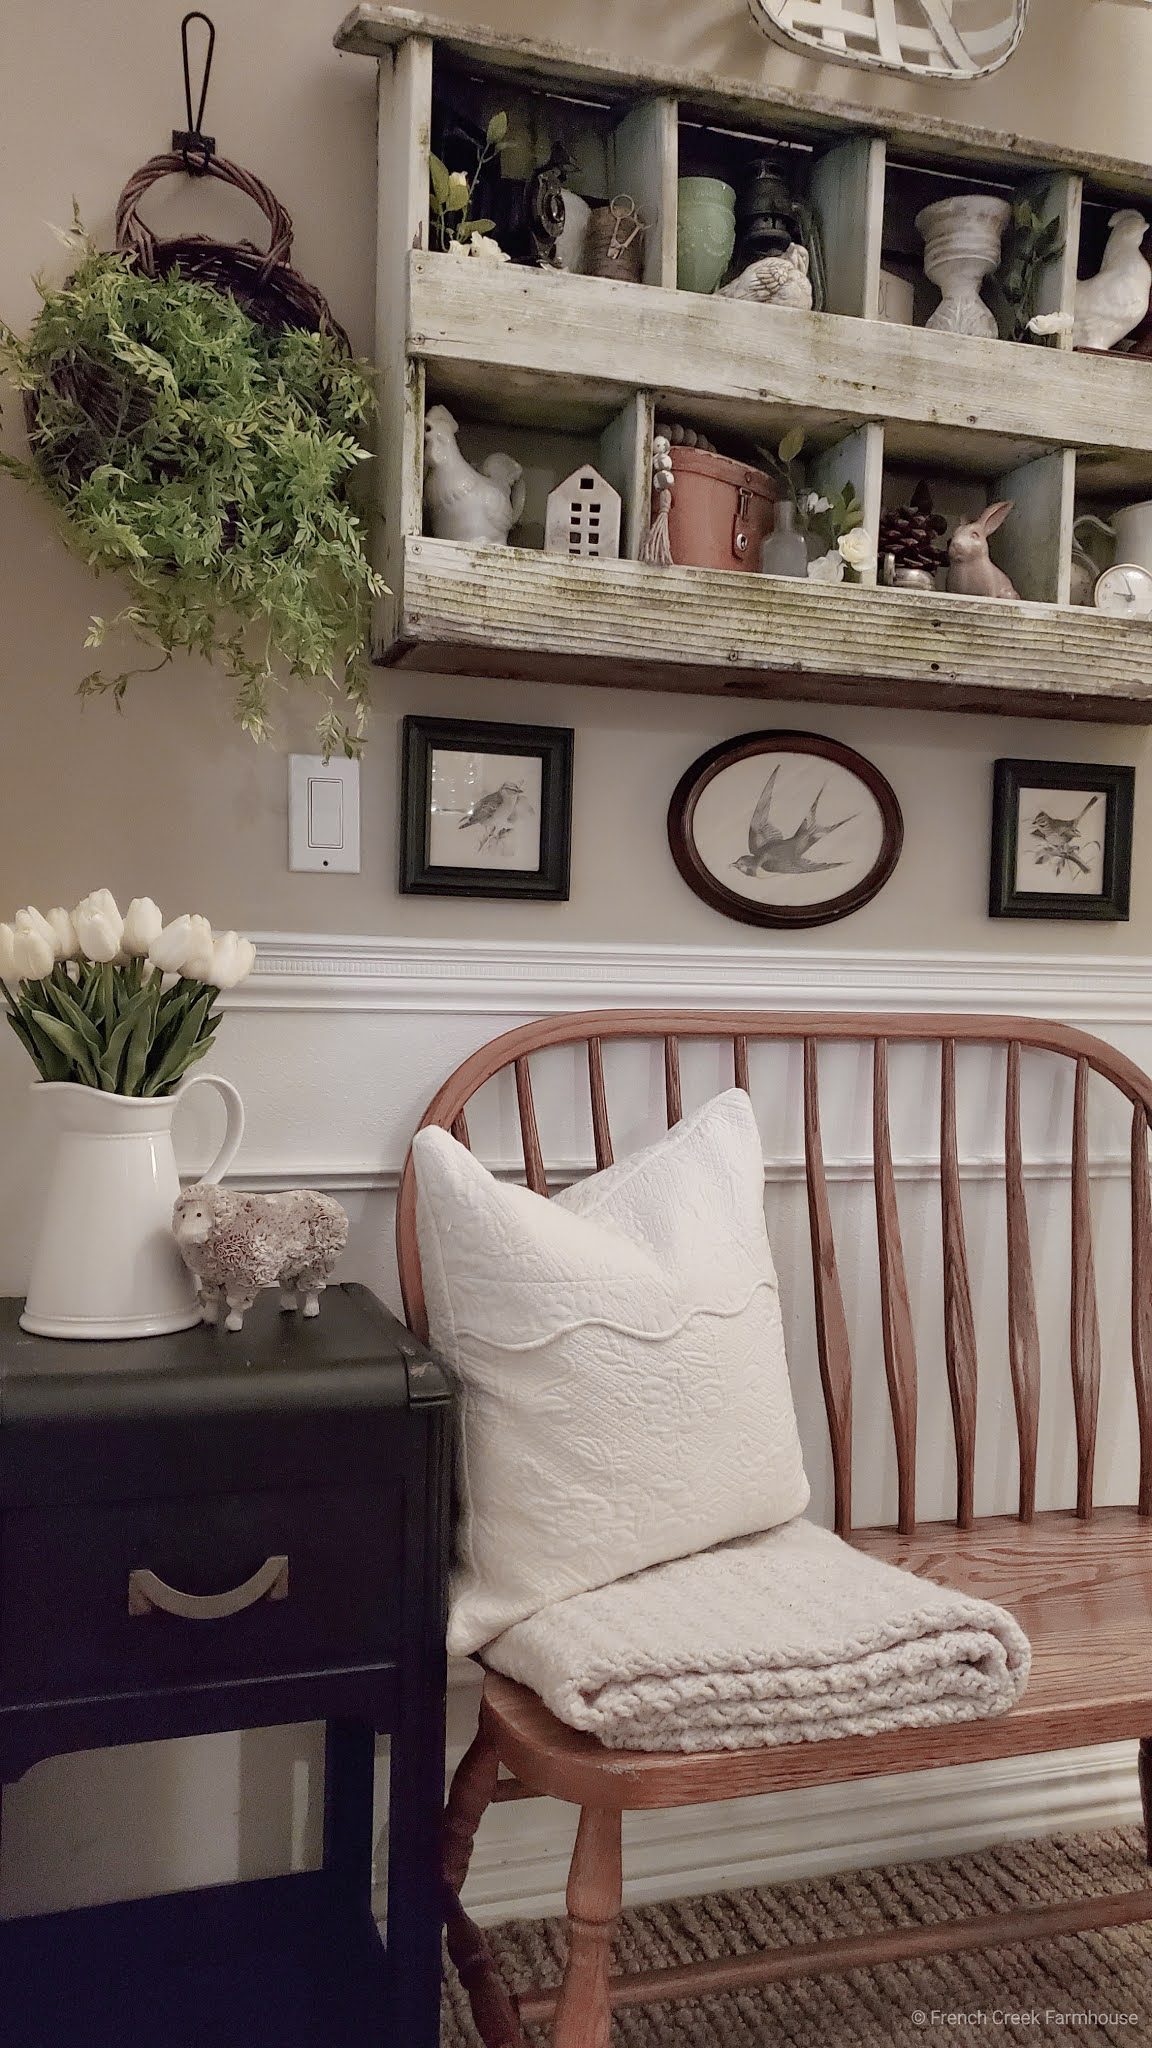 Wall Hanging Basket Above Bench